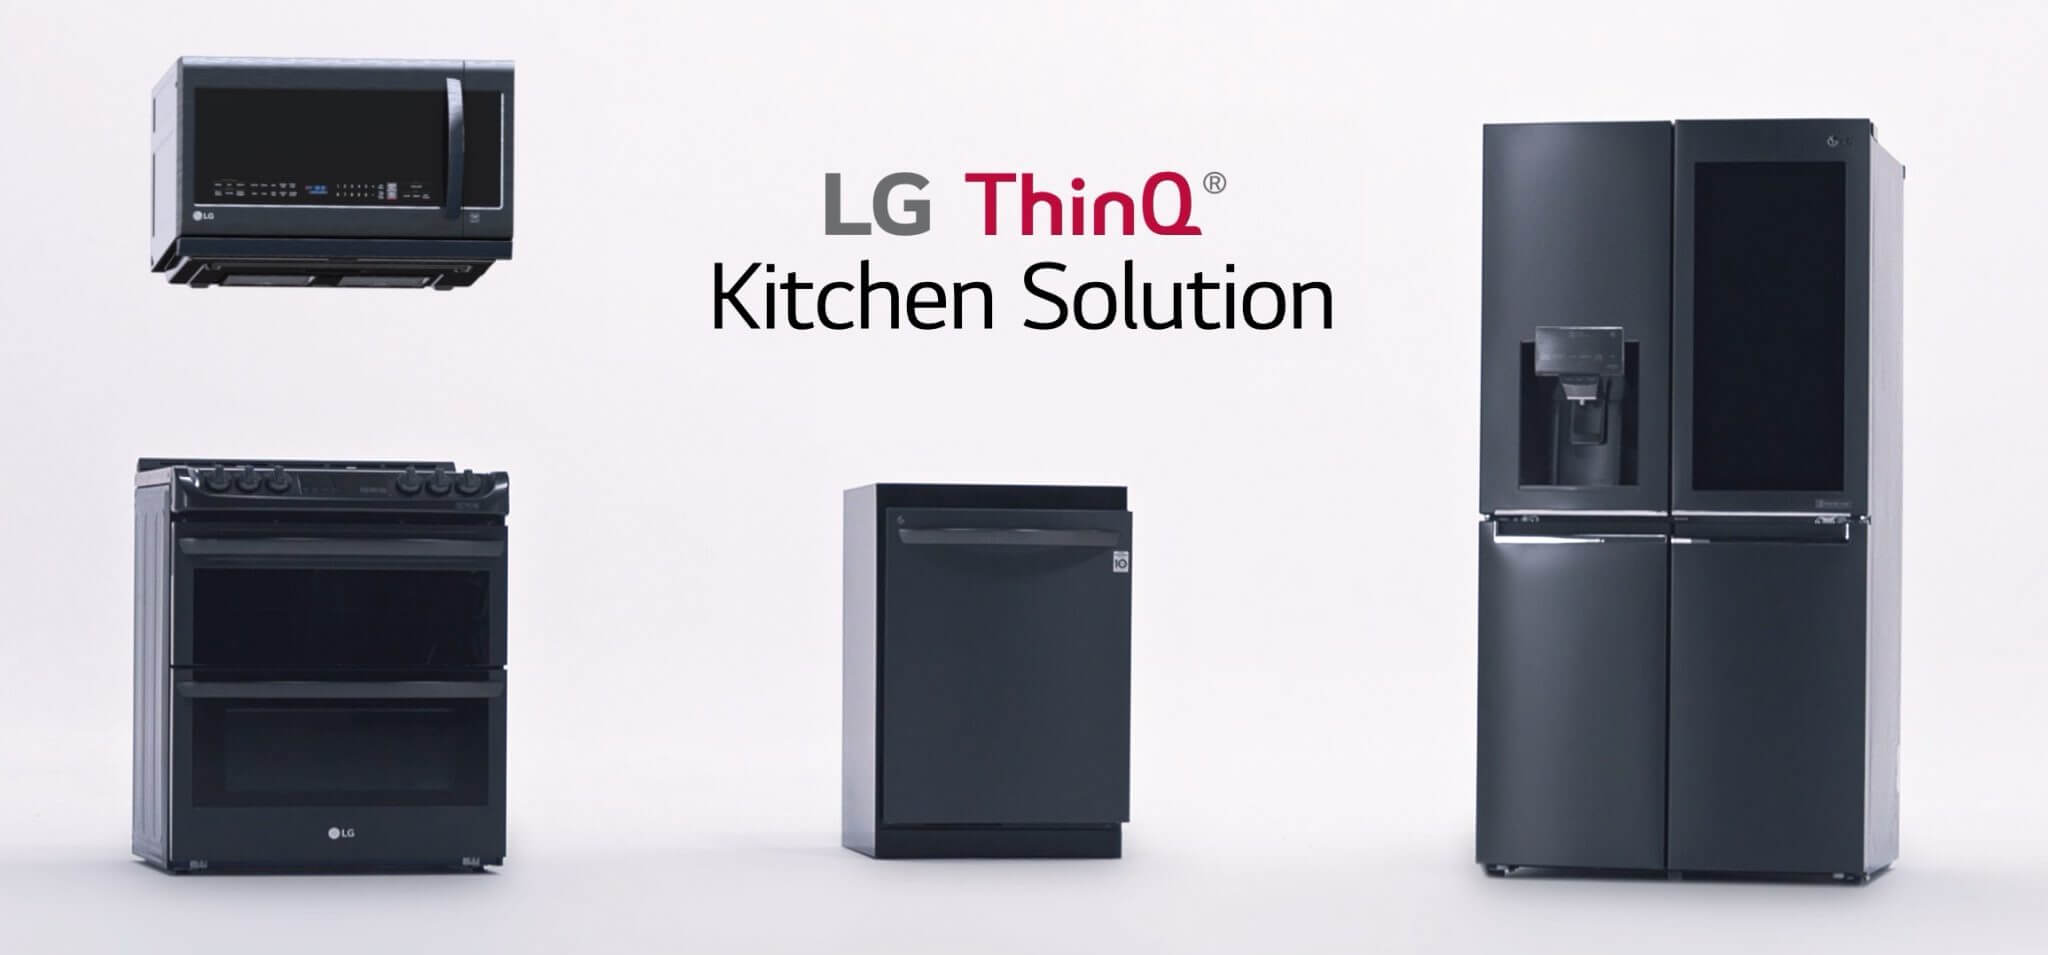 LG ThinQ Kitchen Solution Release